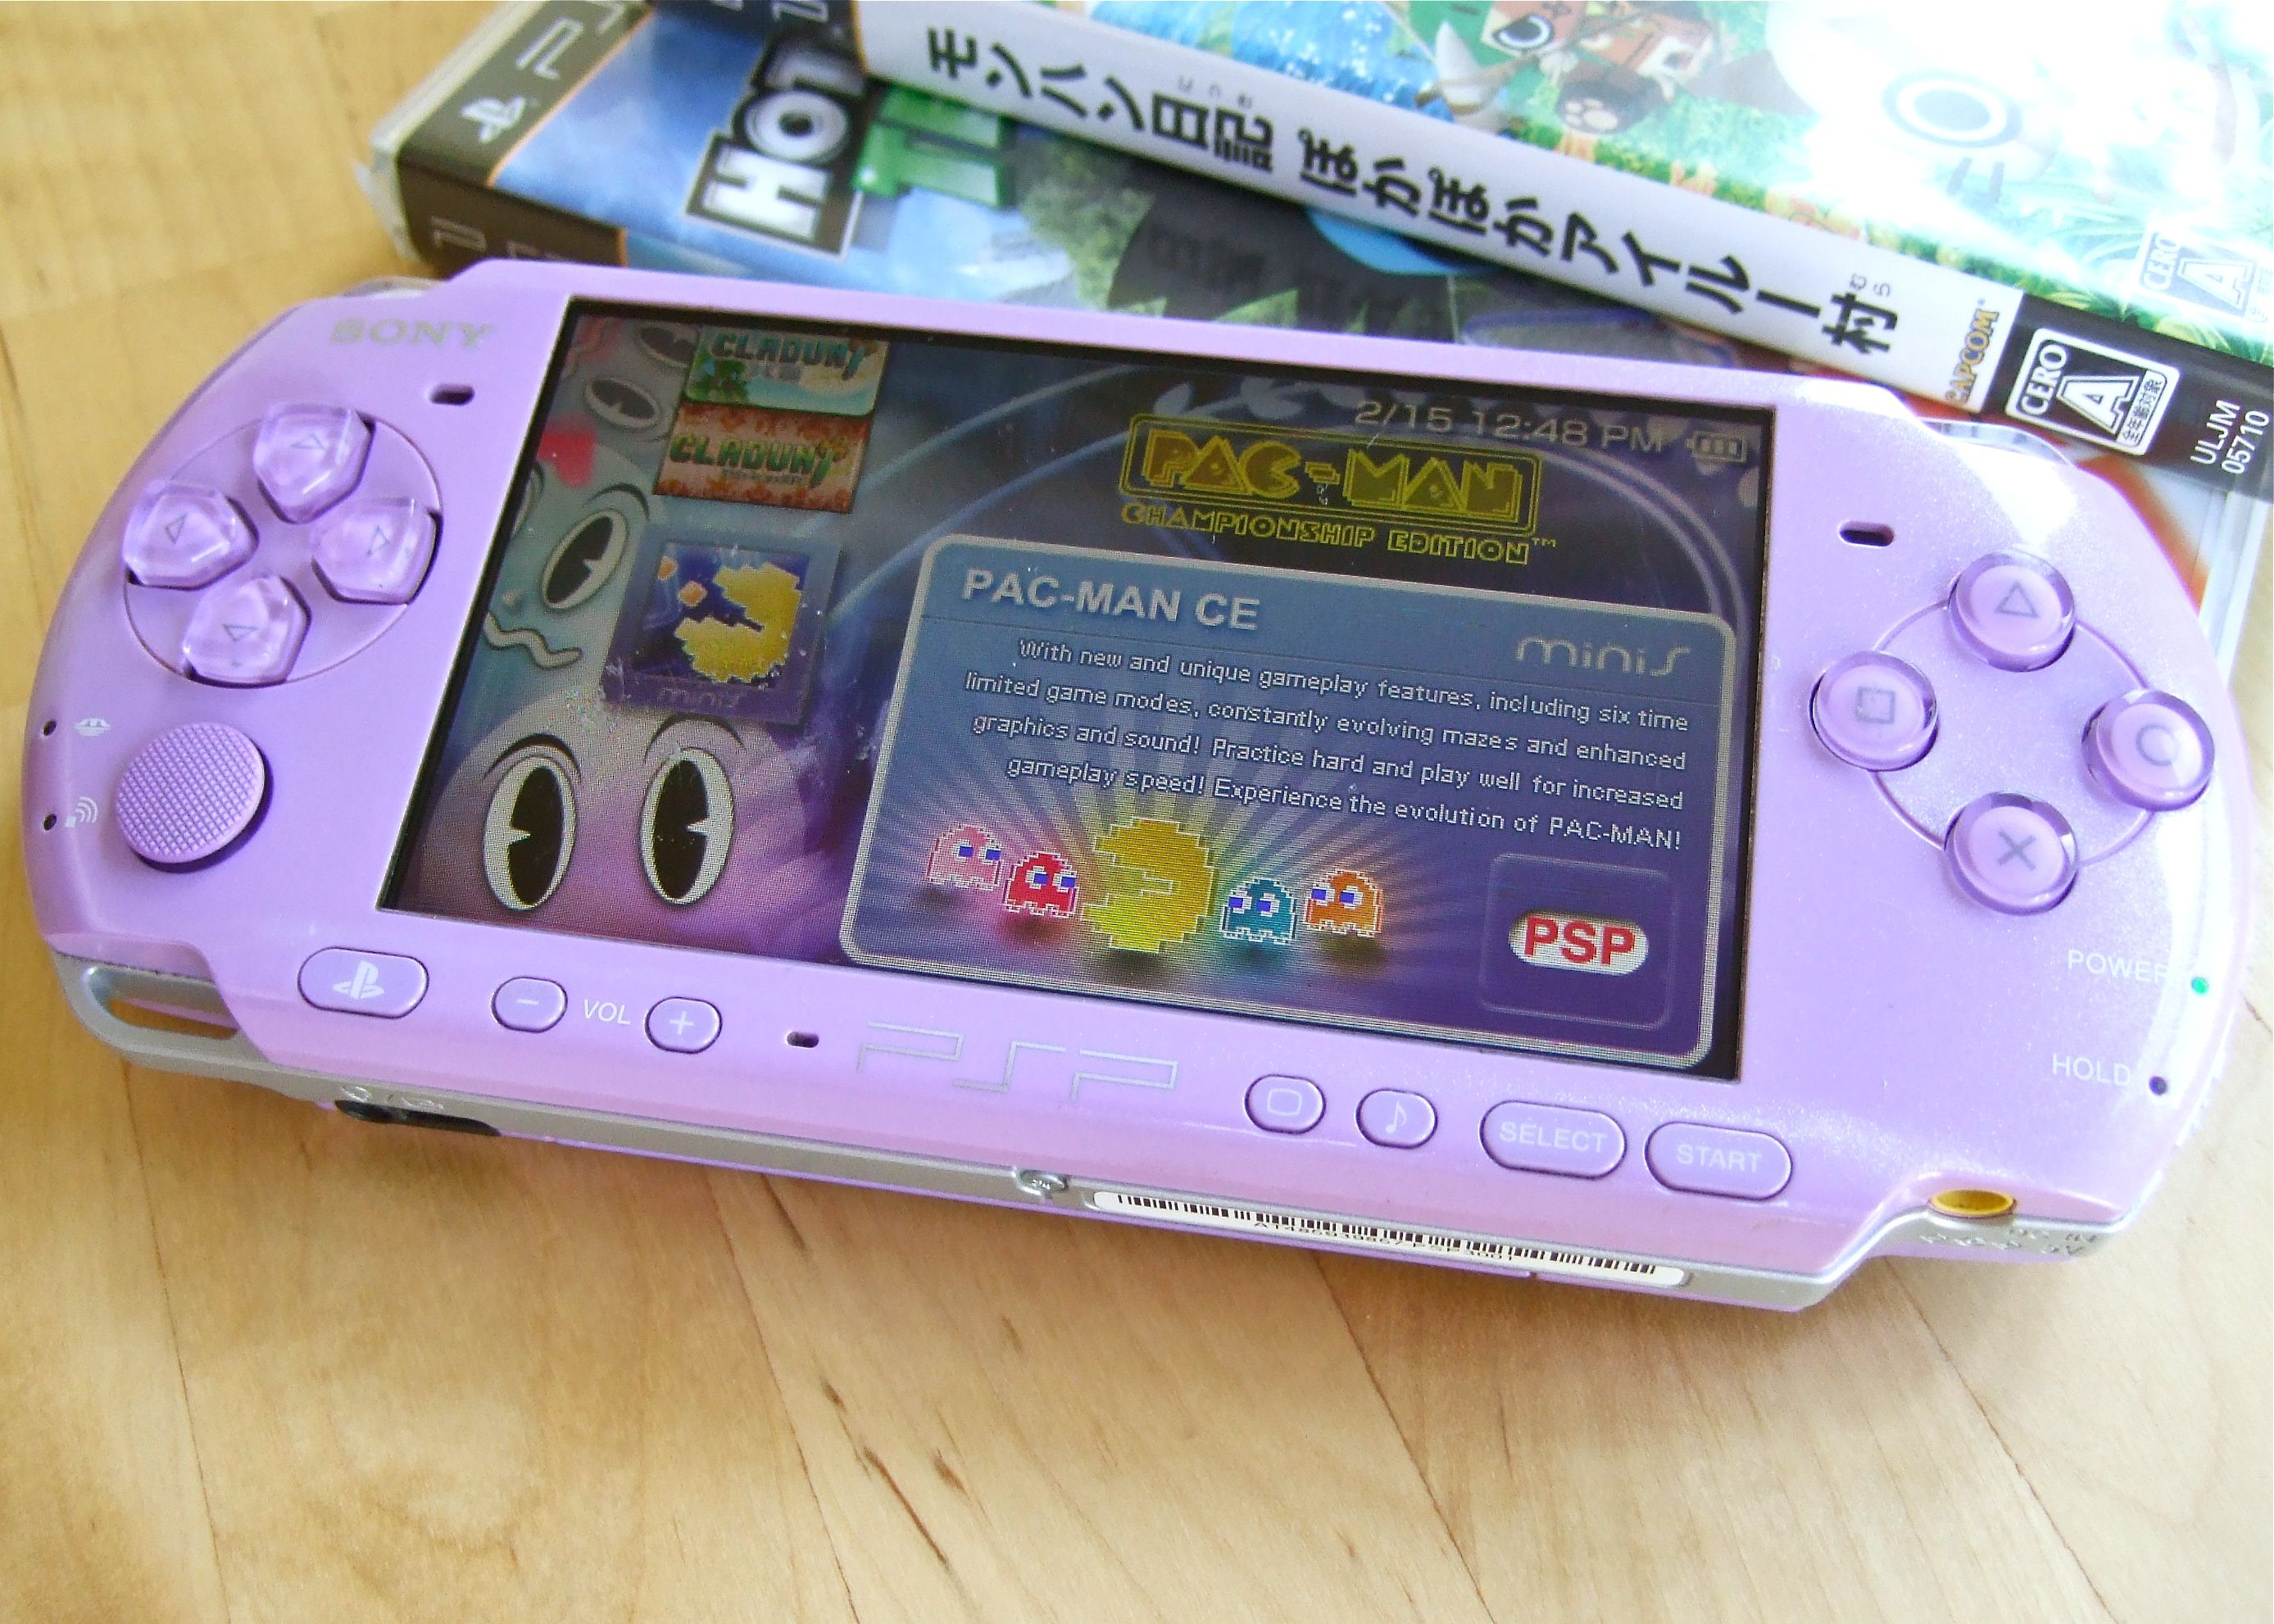 Sony Psp Playstation Portable Specs And Details Network 200